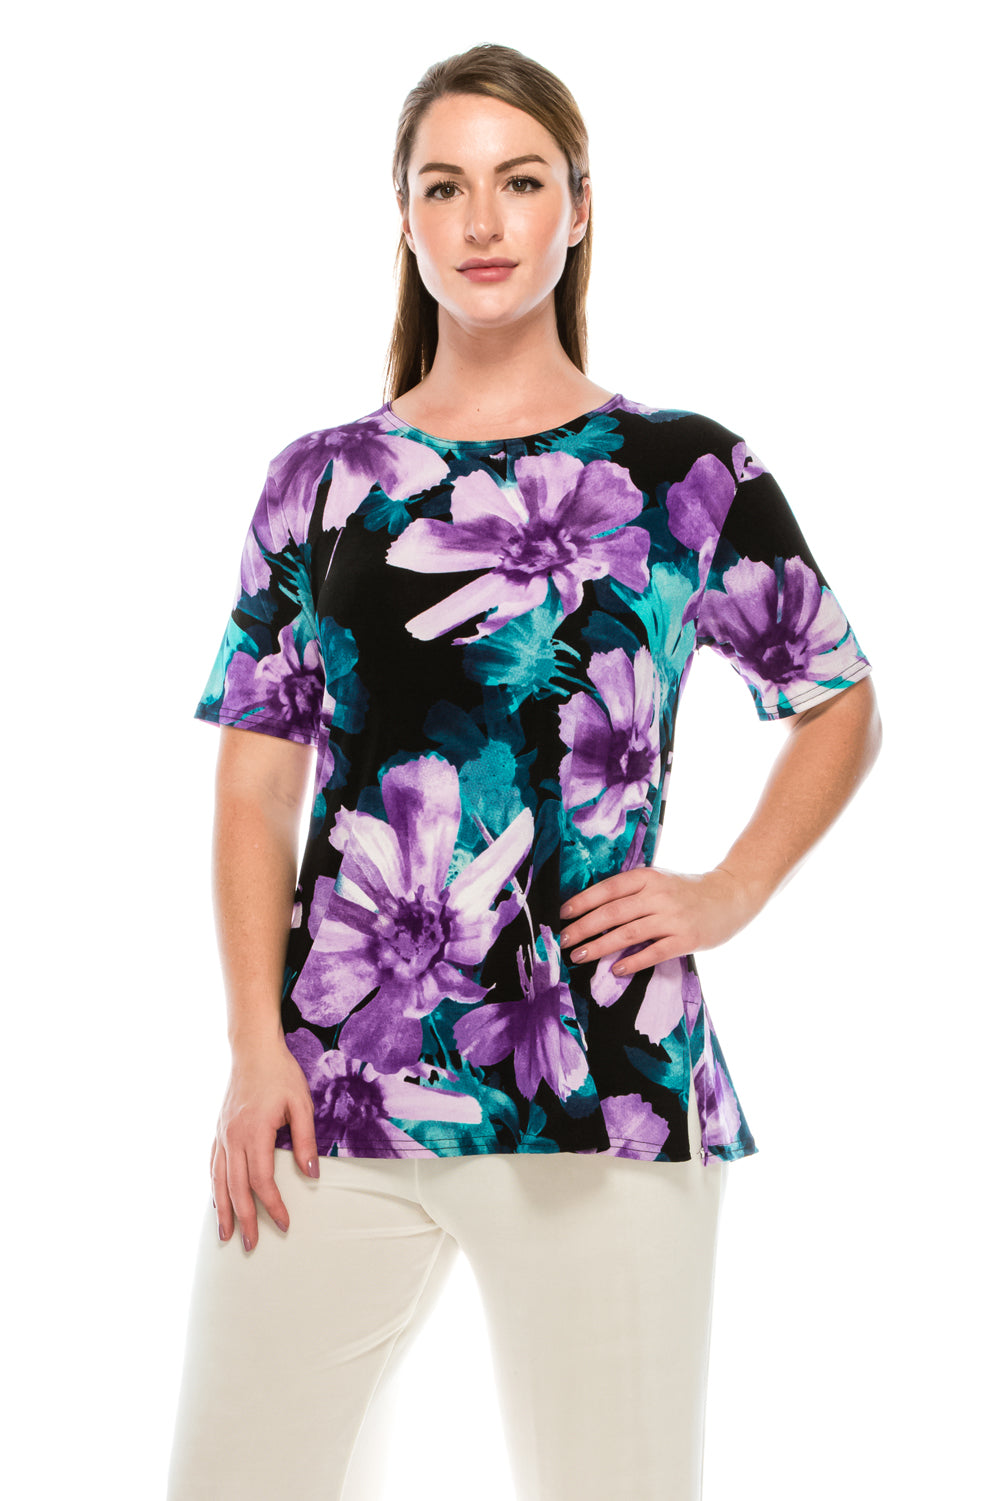 Jostar Women's Stretchy Vented Top Short Sleeve Printed, 242BN-SP-W050 - Jostar Online